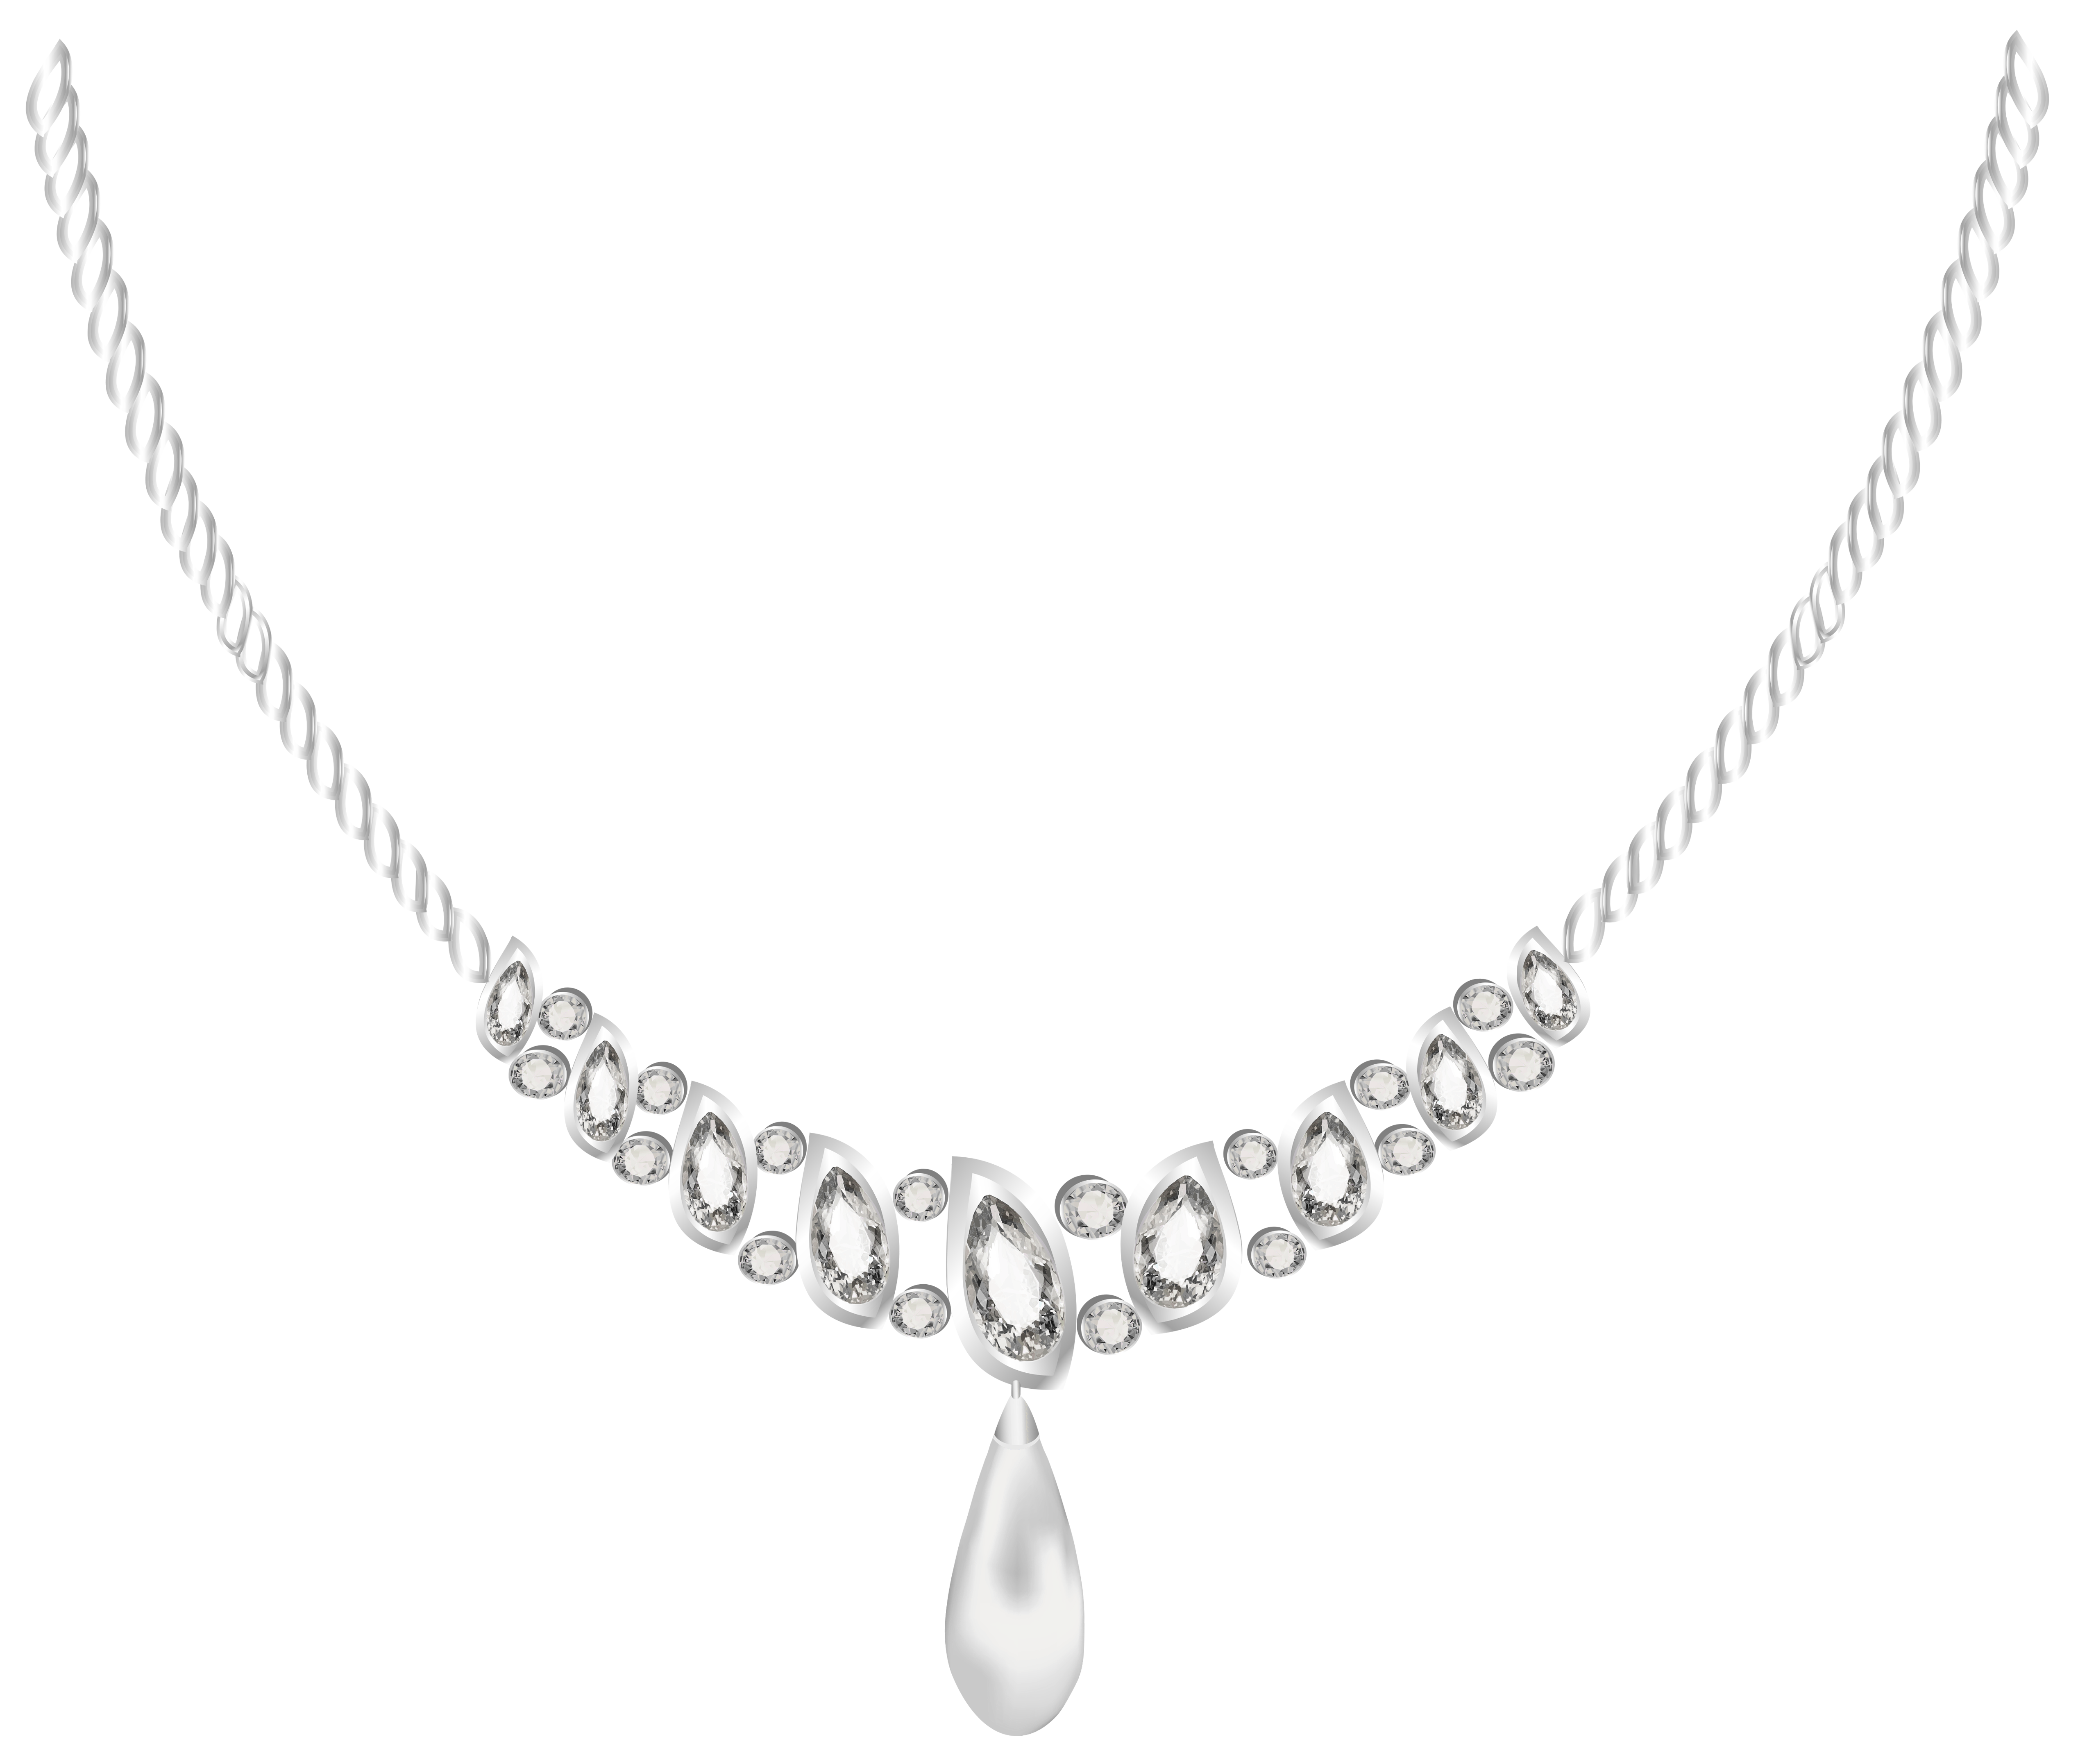 Necklace clipart neklace. Transparent png picture gallery